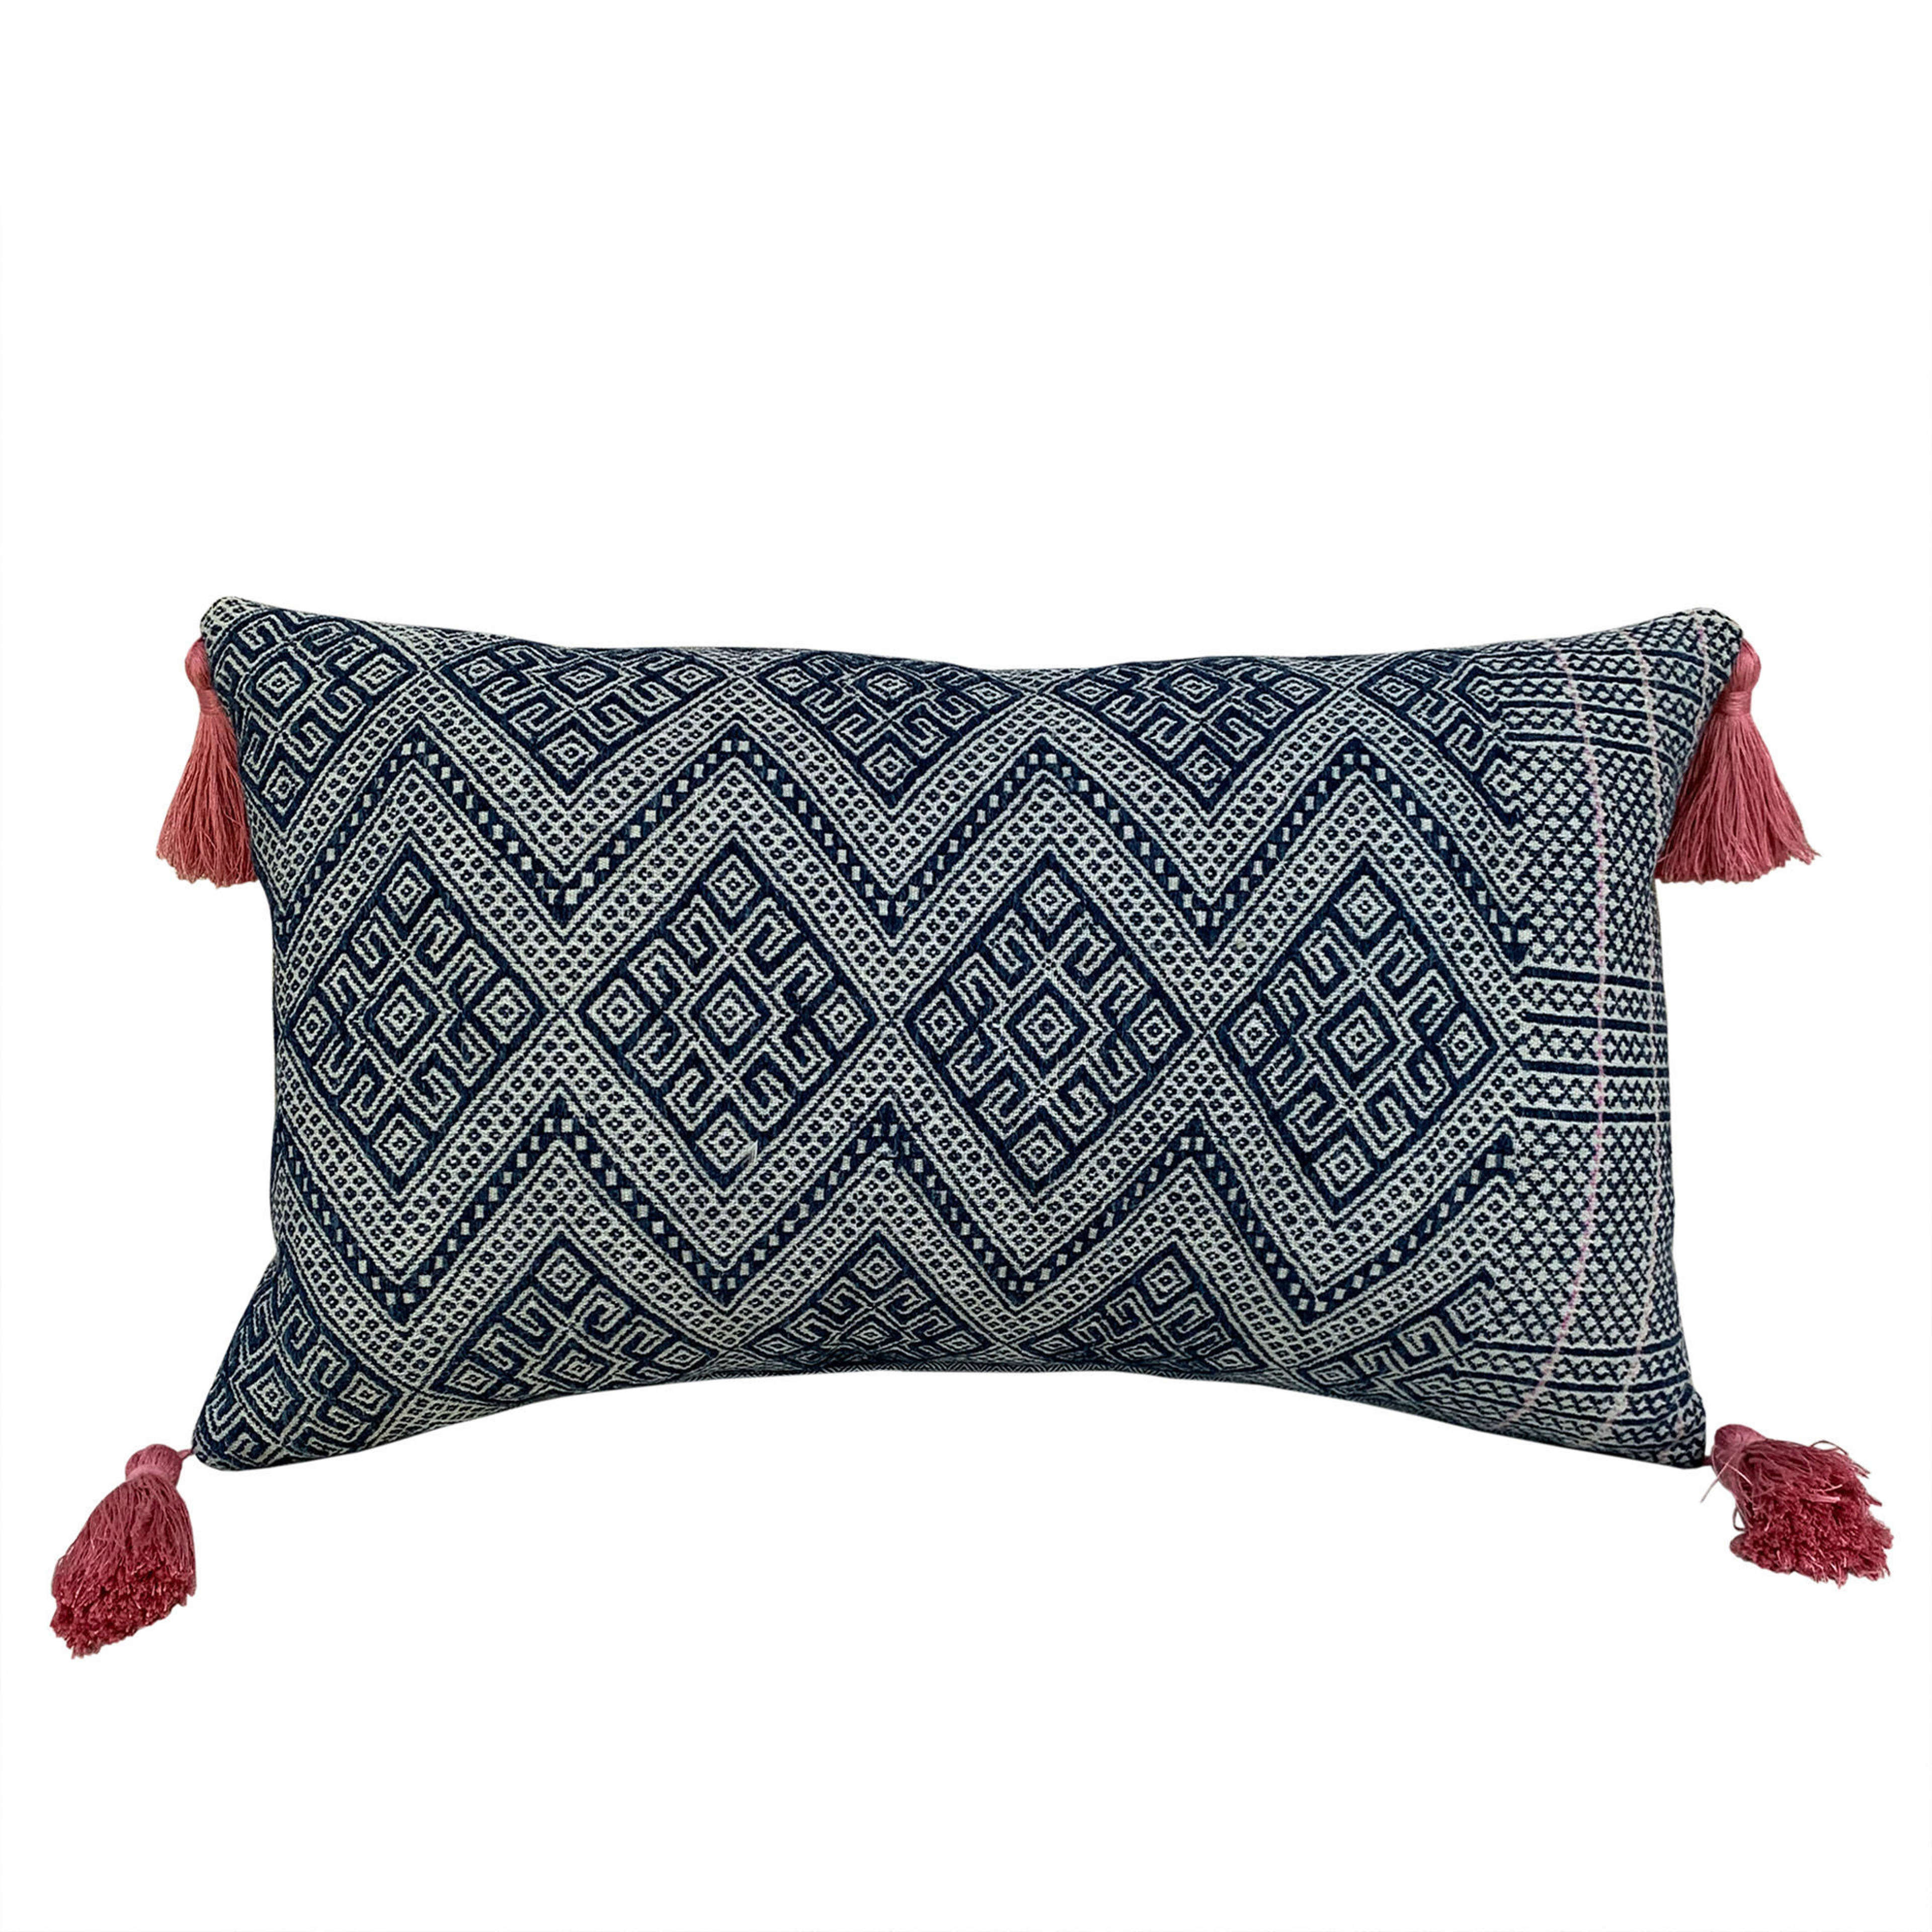 Indigo Zhuang cushions with pink tassels